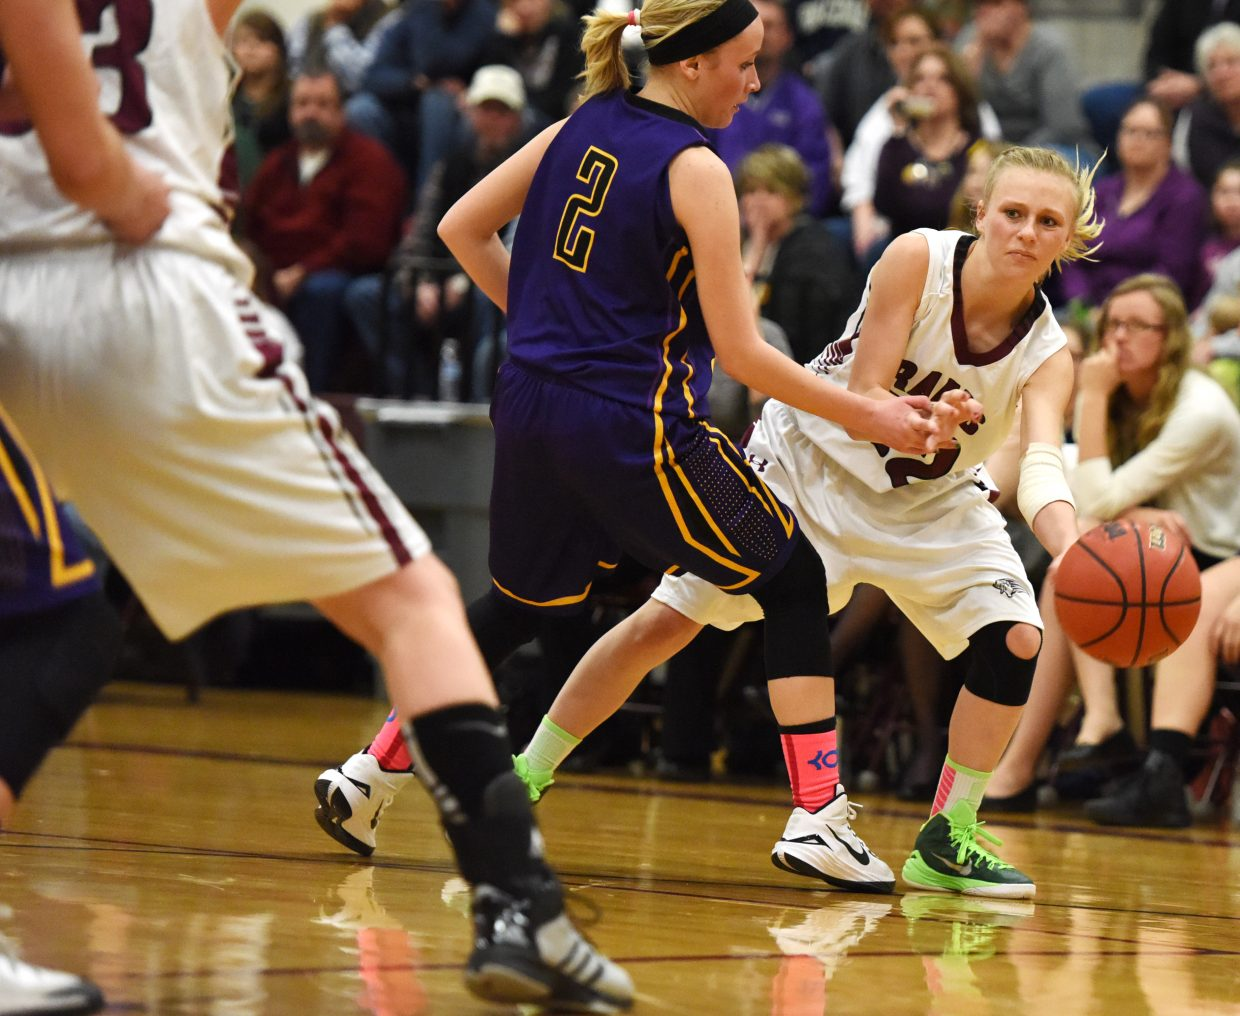 Soroco's Morgan George tries to slip a pass into the paint Saturday.